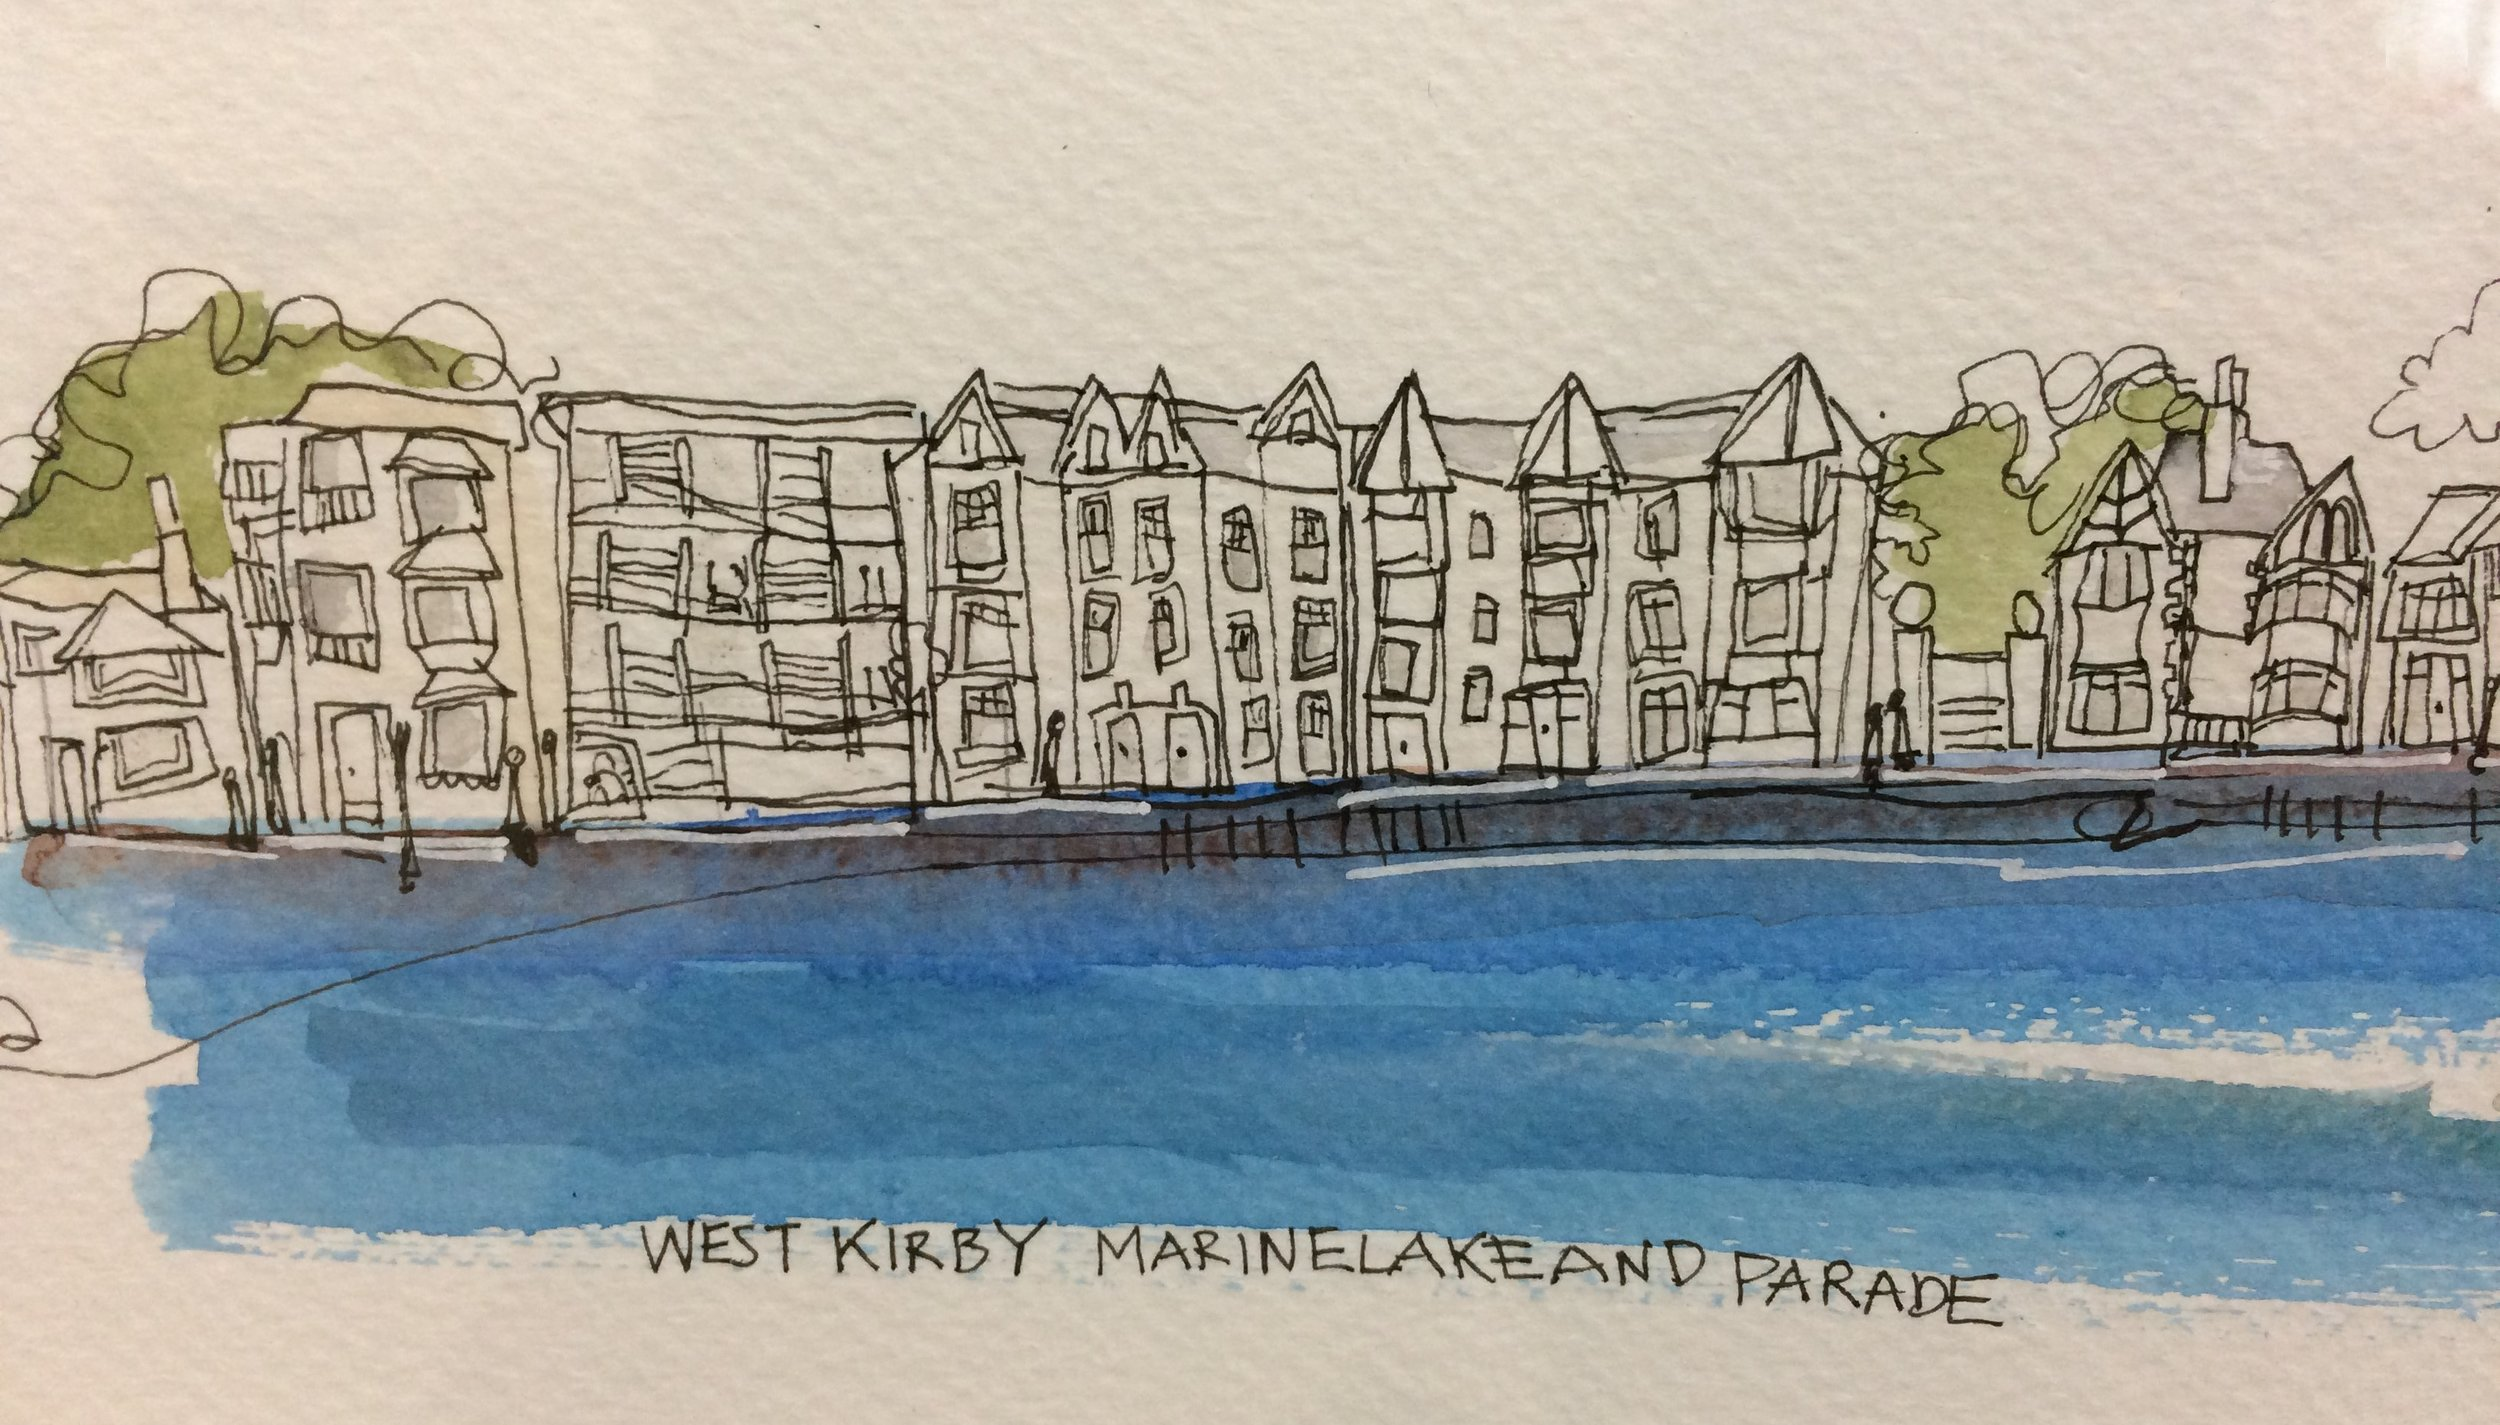 West Kirby Marine Lake and Parade (detail)